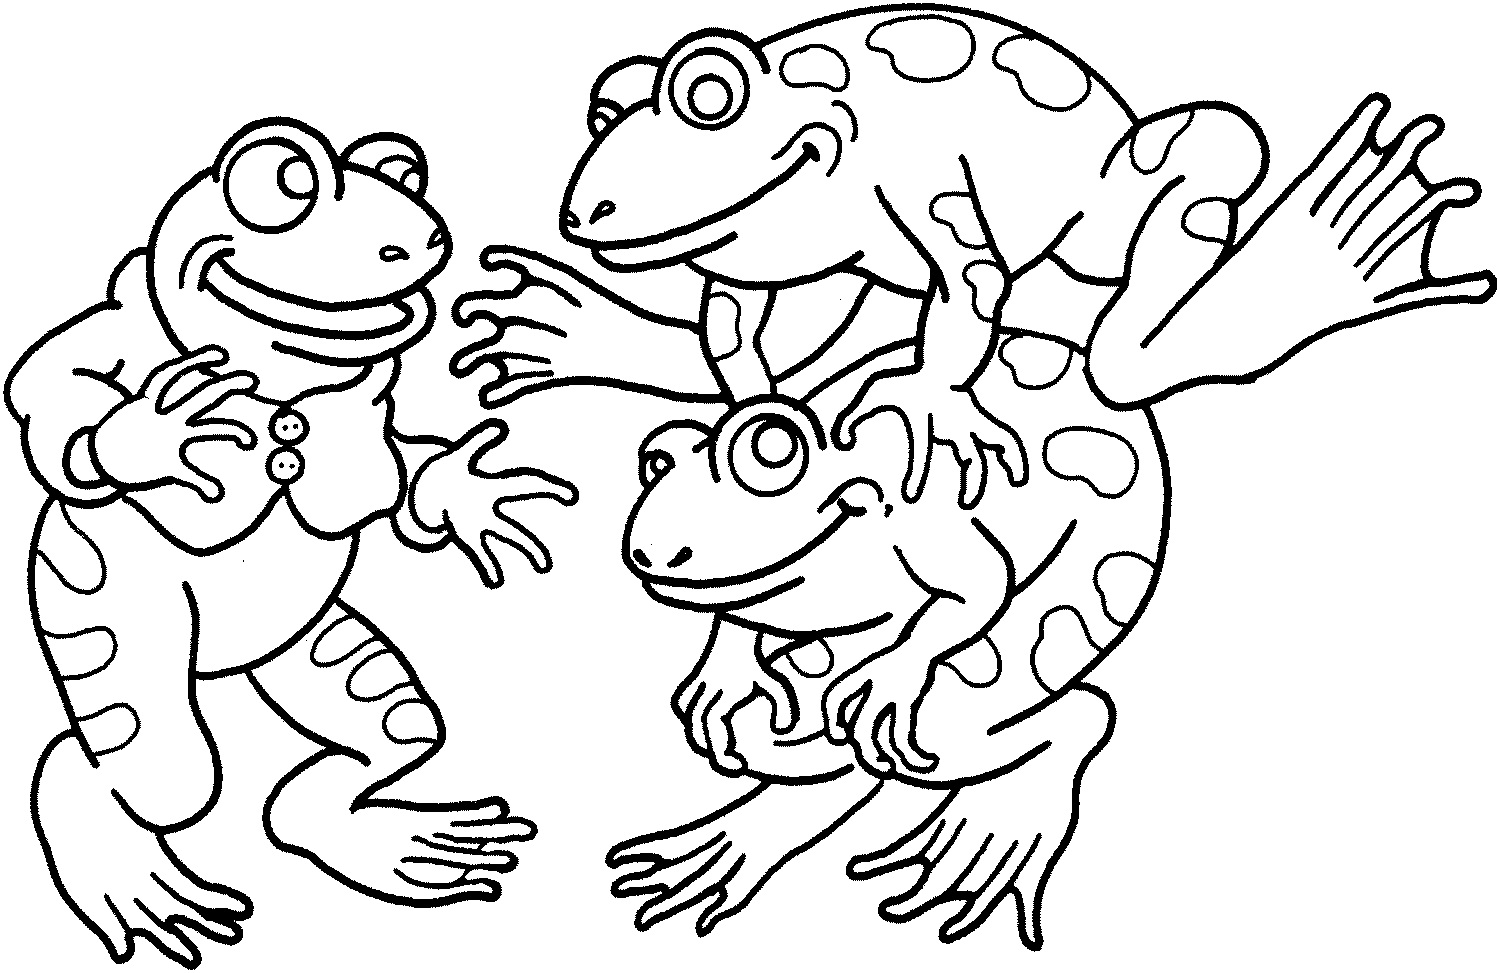 free frog coloring pages free printable frog coloring pages for kids coloring pages frog free